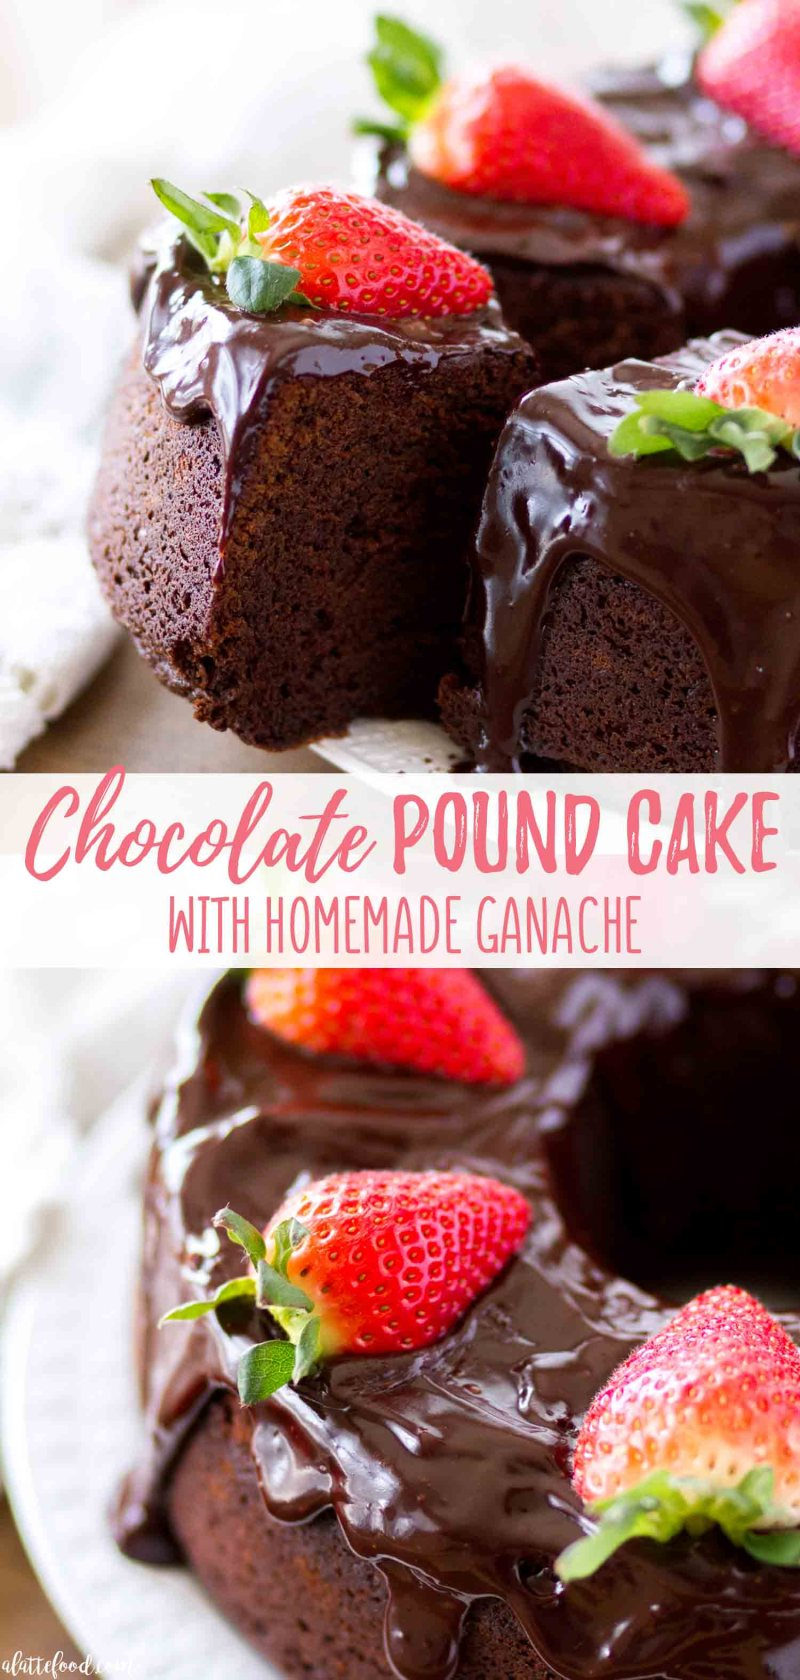 Easy chocolate pound cake recipe with homemade chocolate ganache collage photo